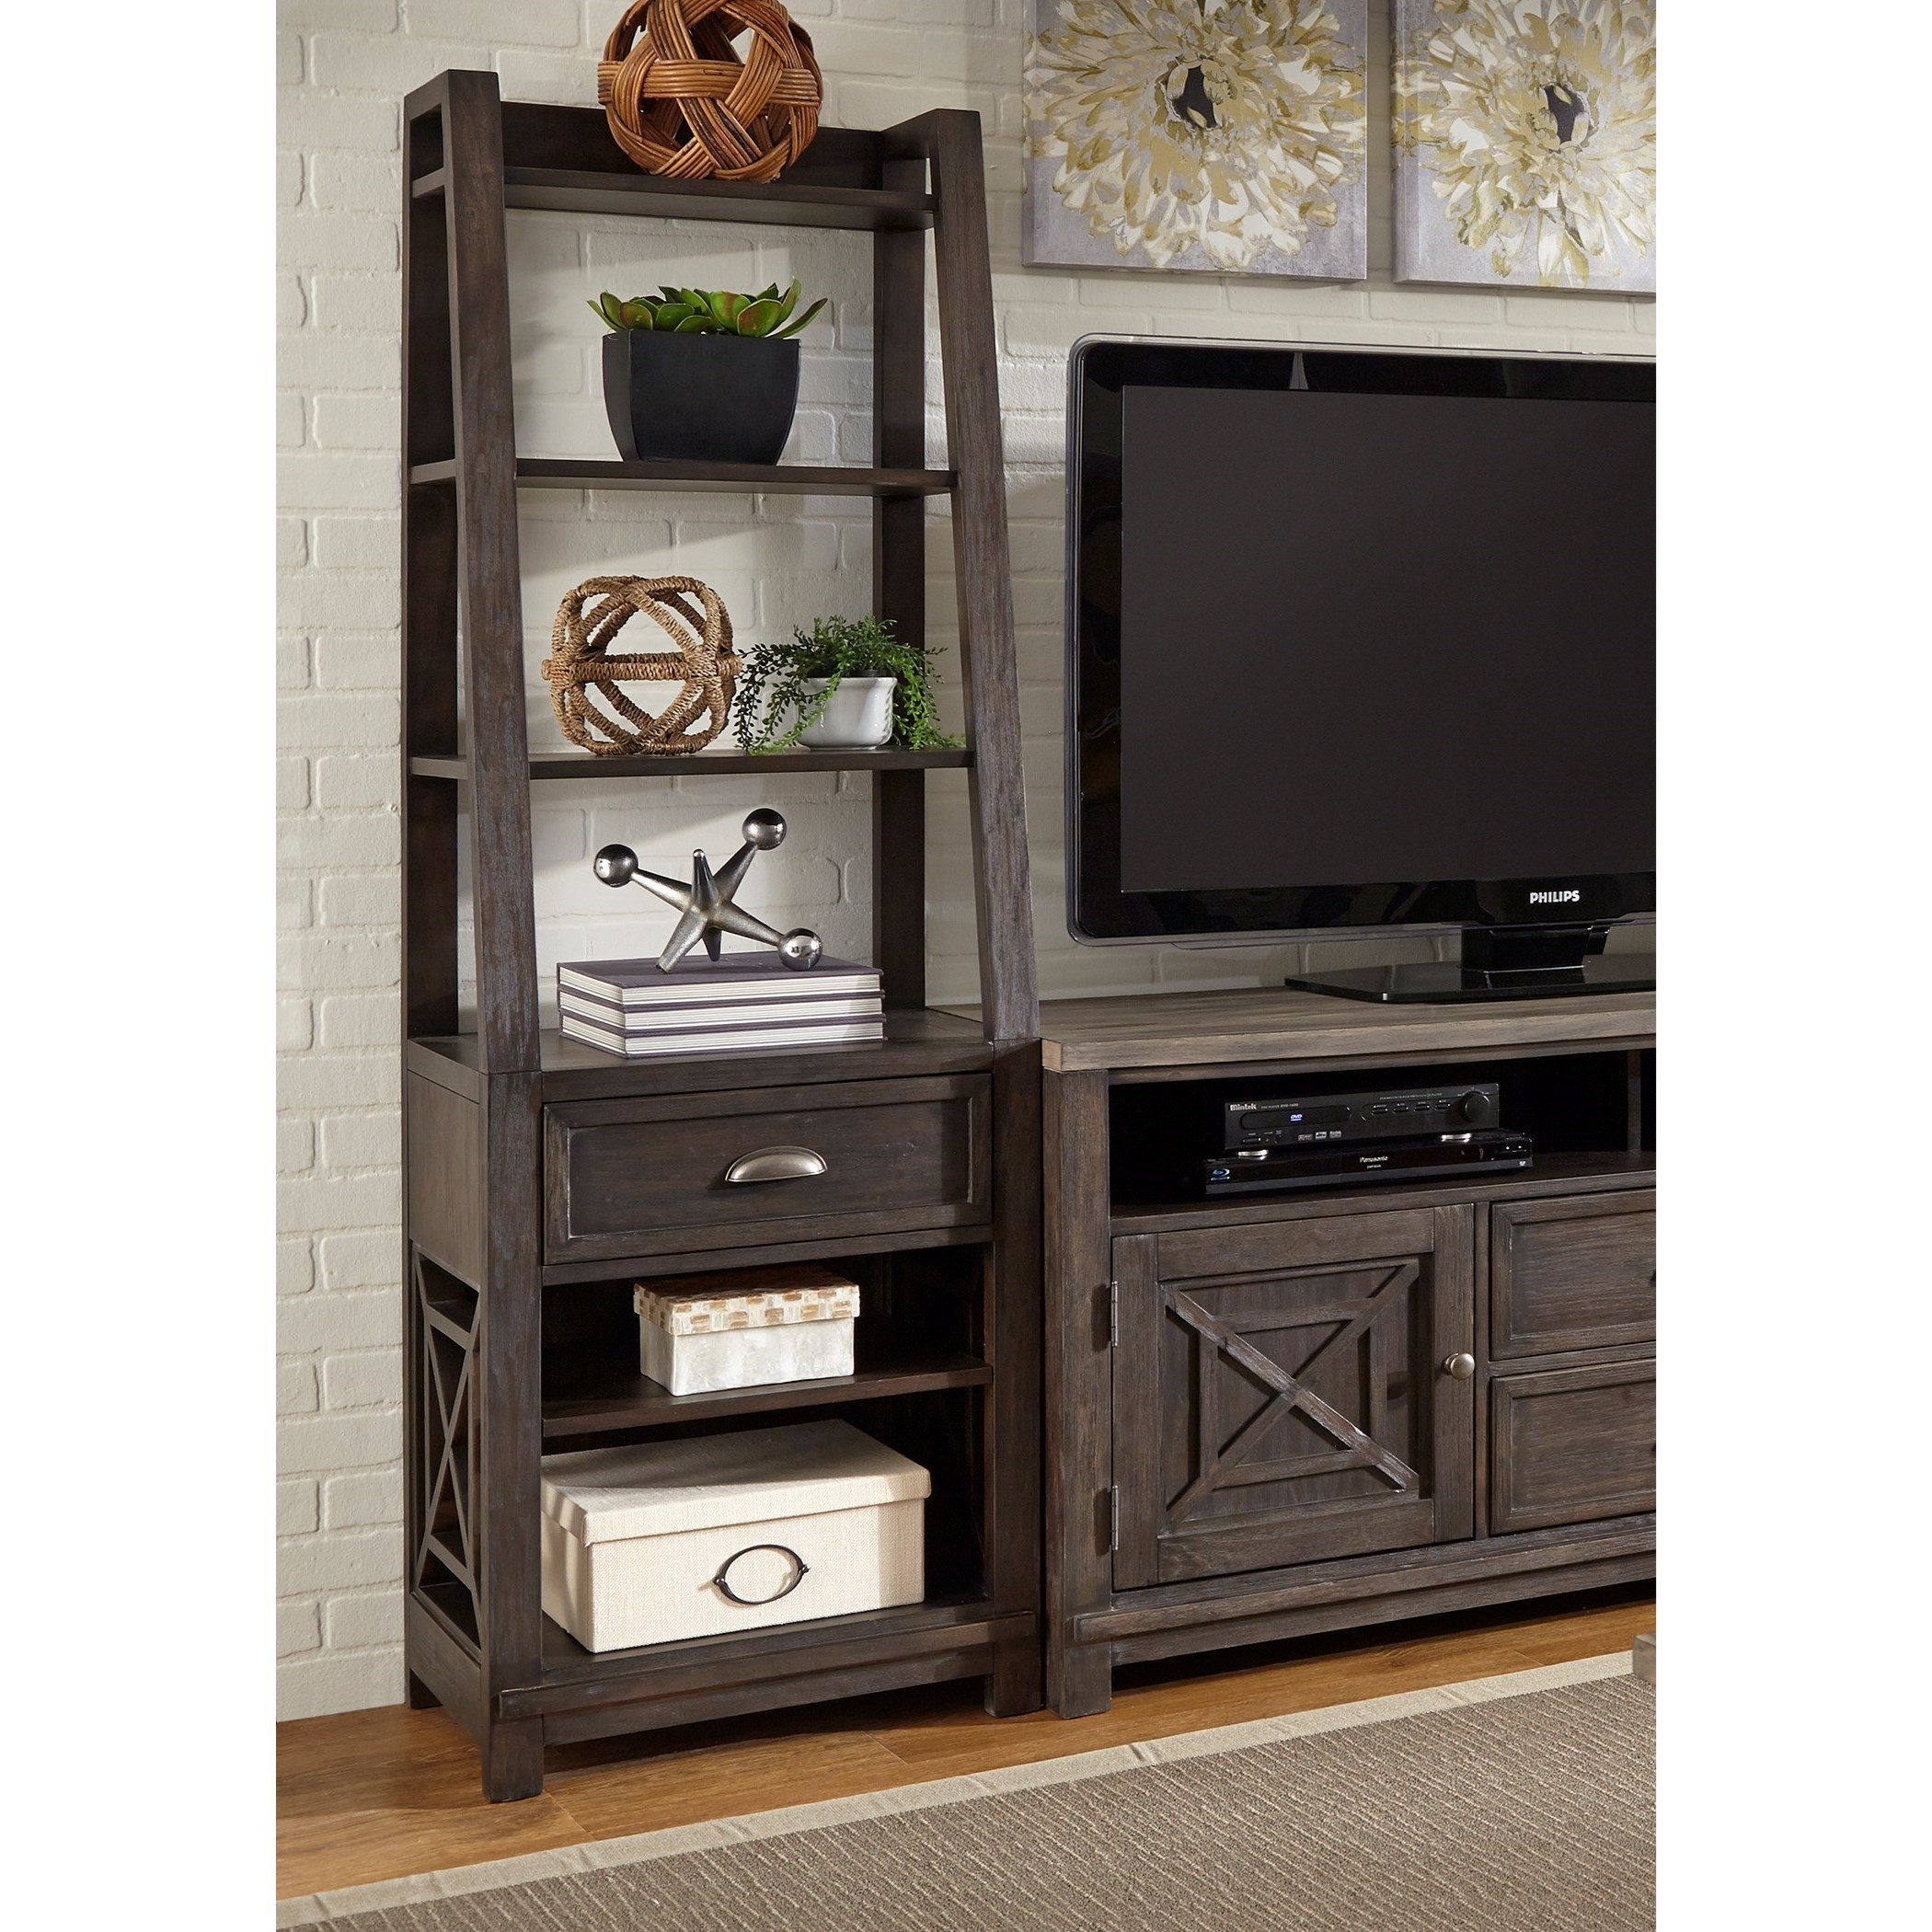 Transitional Pier Unit with Dovetail Drawer